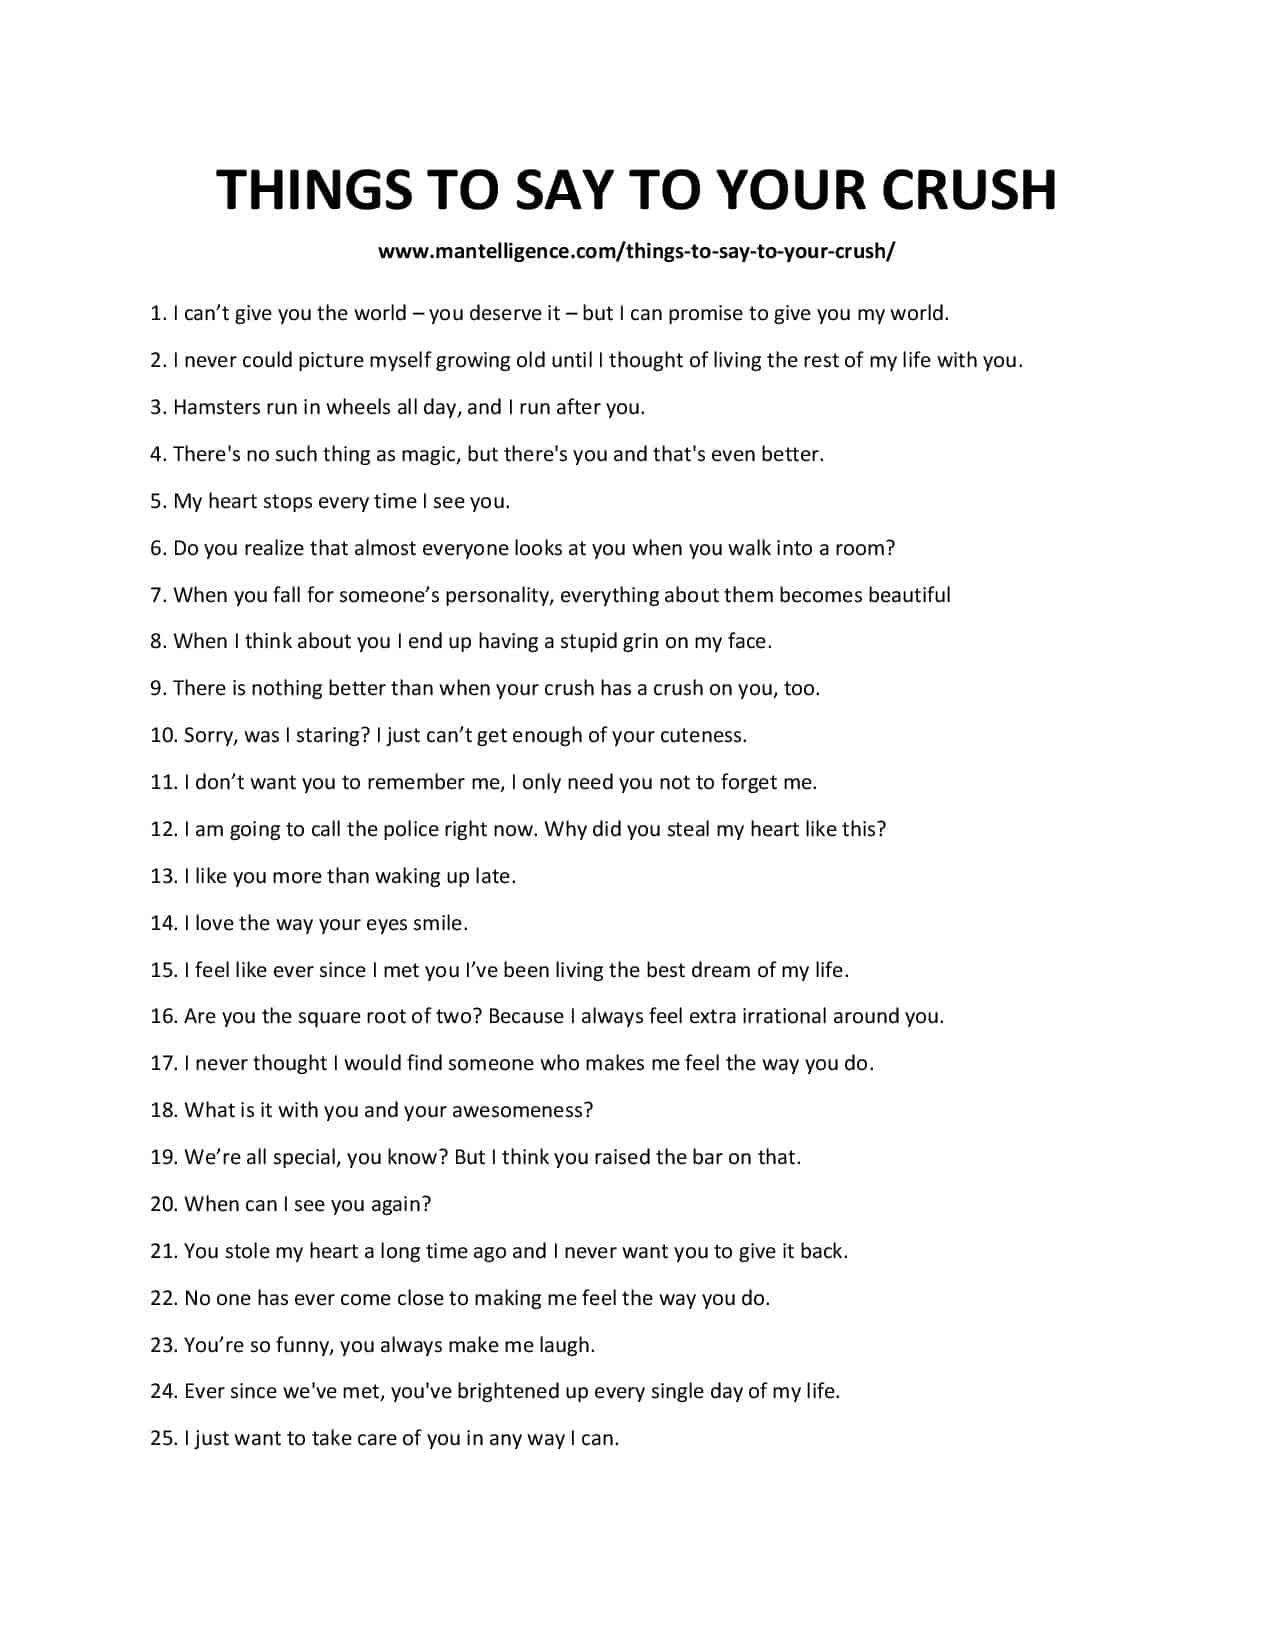 51 Things To Say To Your Crush - The only list you need.